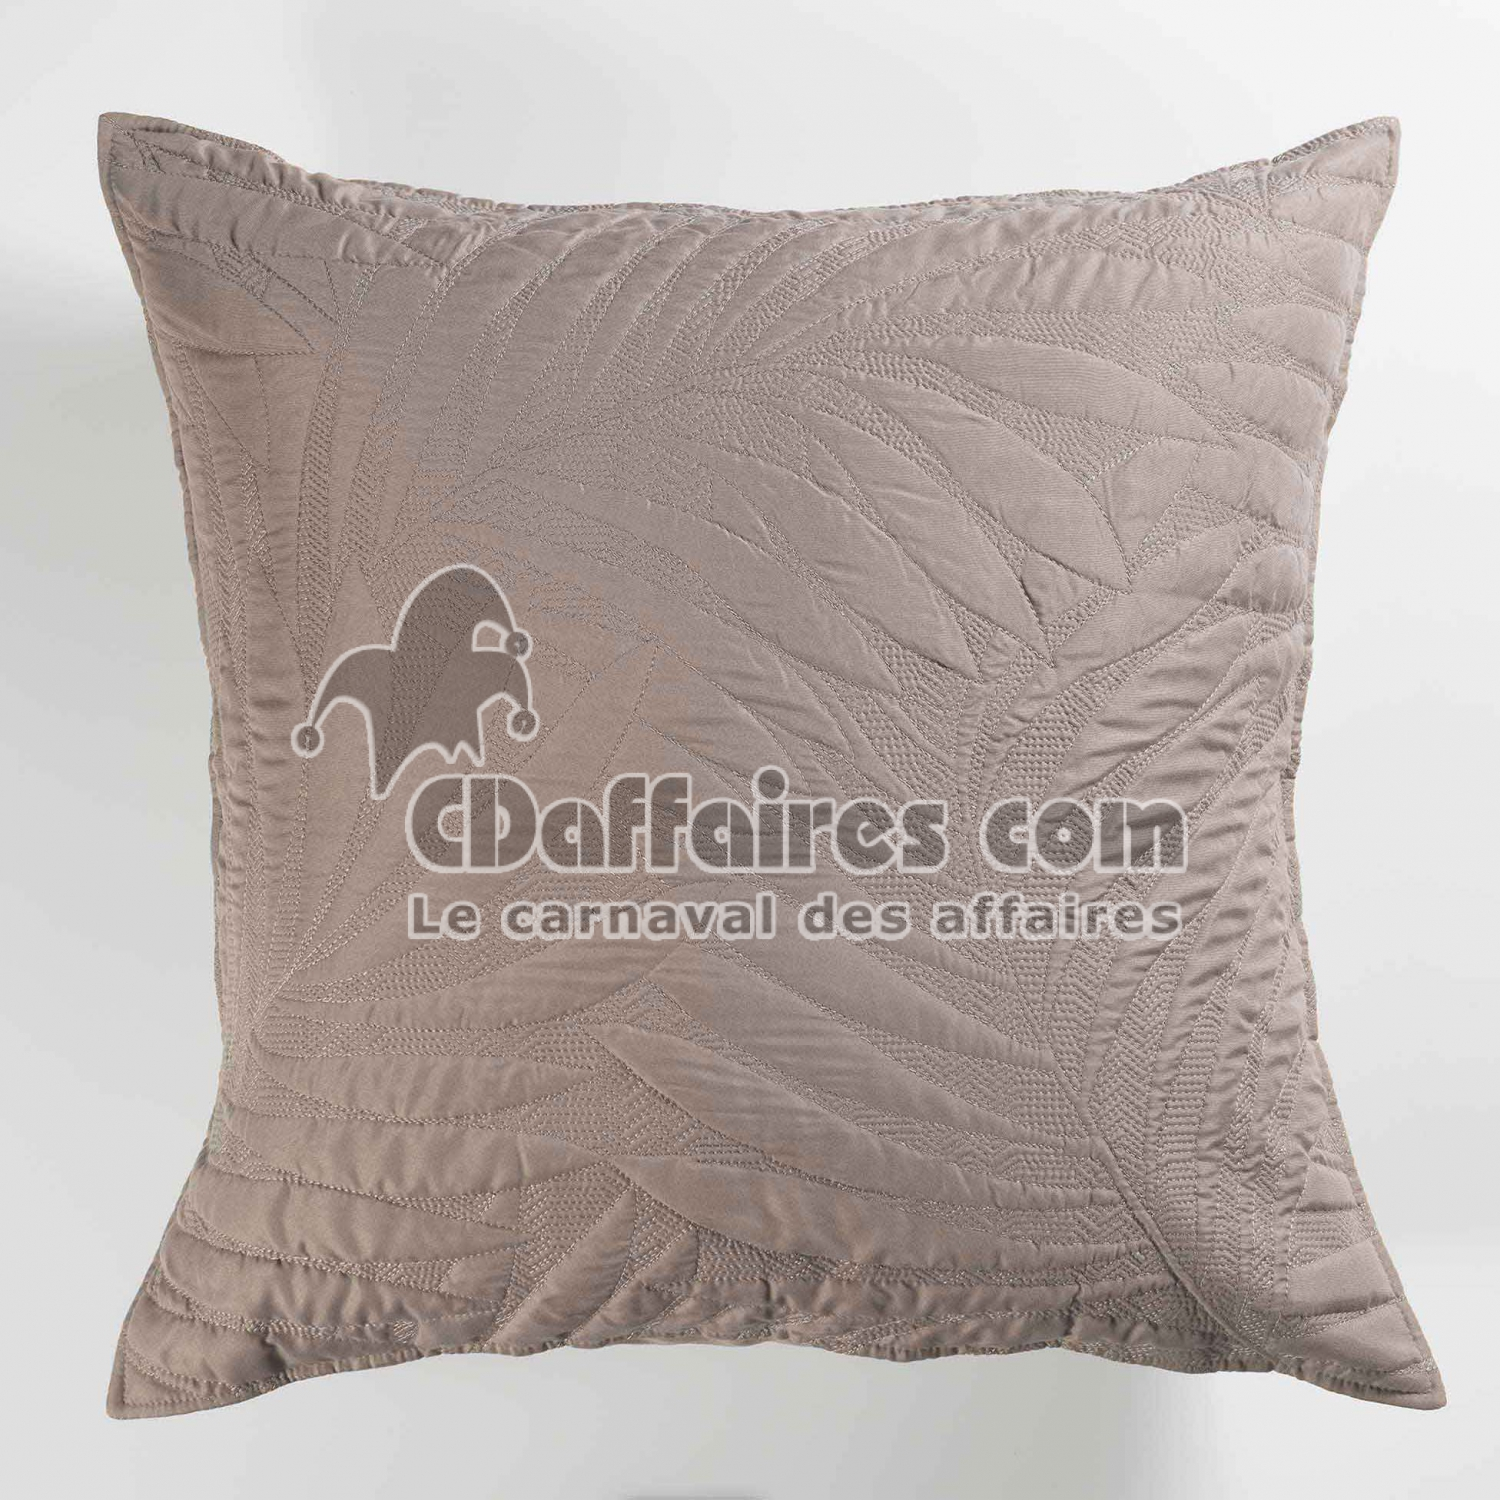 housse de coussin 60 x 60 cm microfibre unie alesia taupe cdaffaires. Black Bedroom Furniture Sets. Home Design Ideas